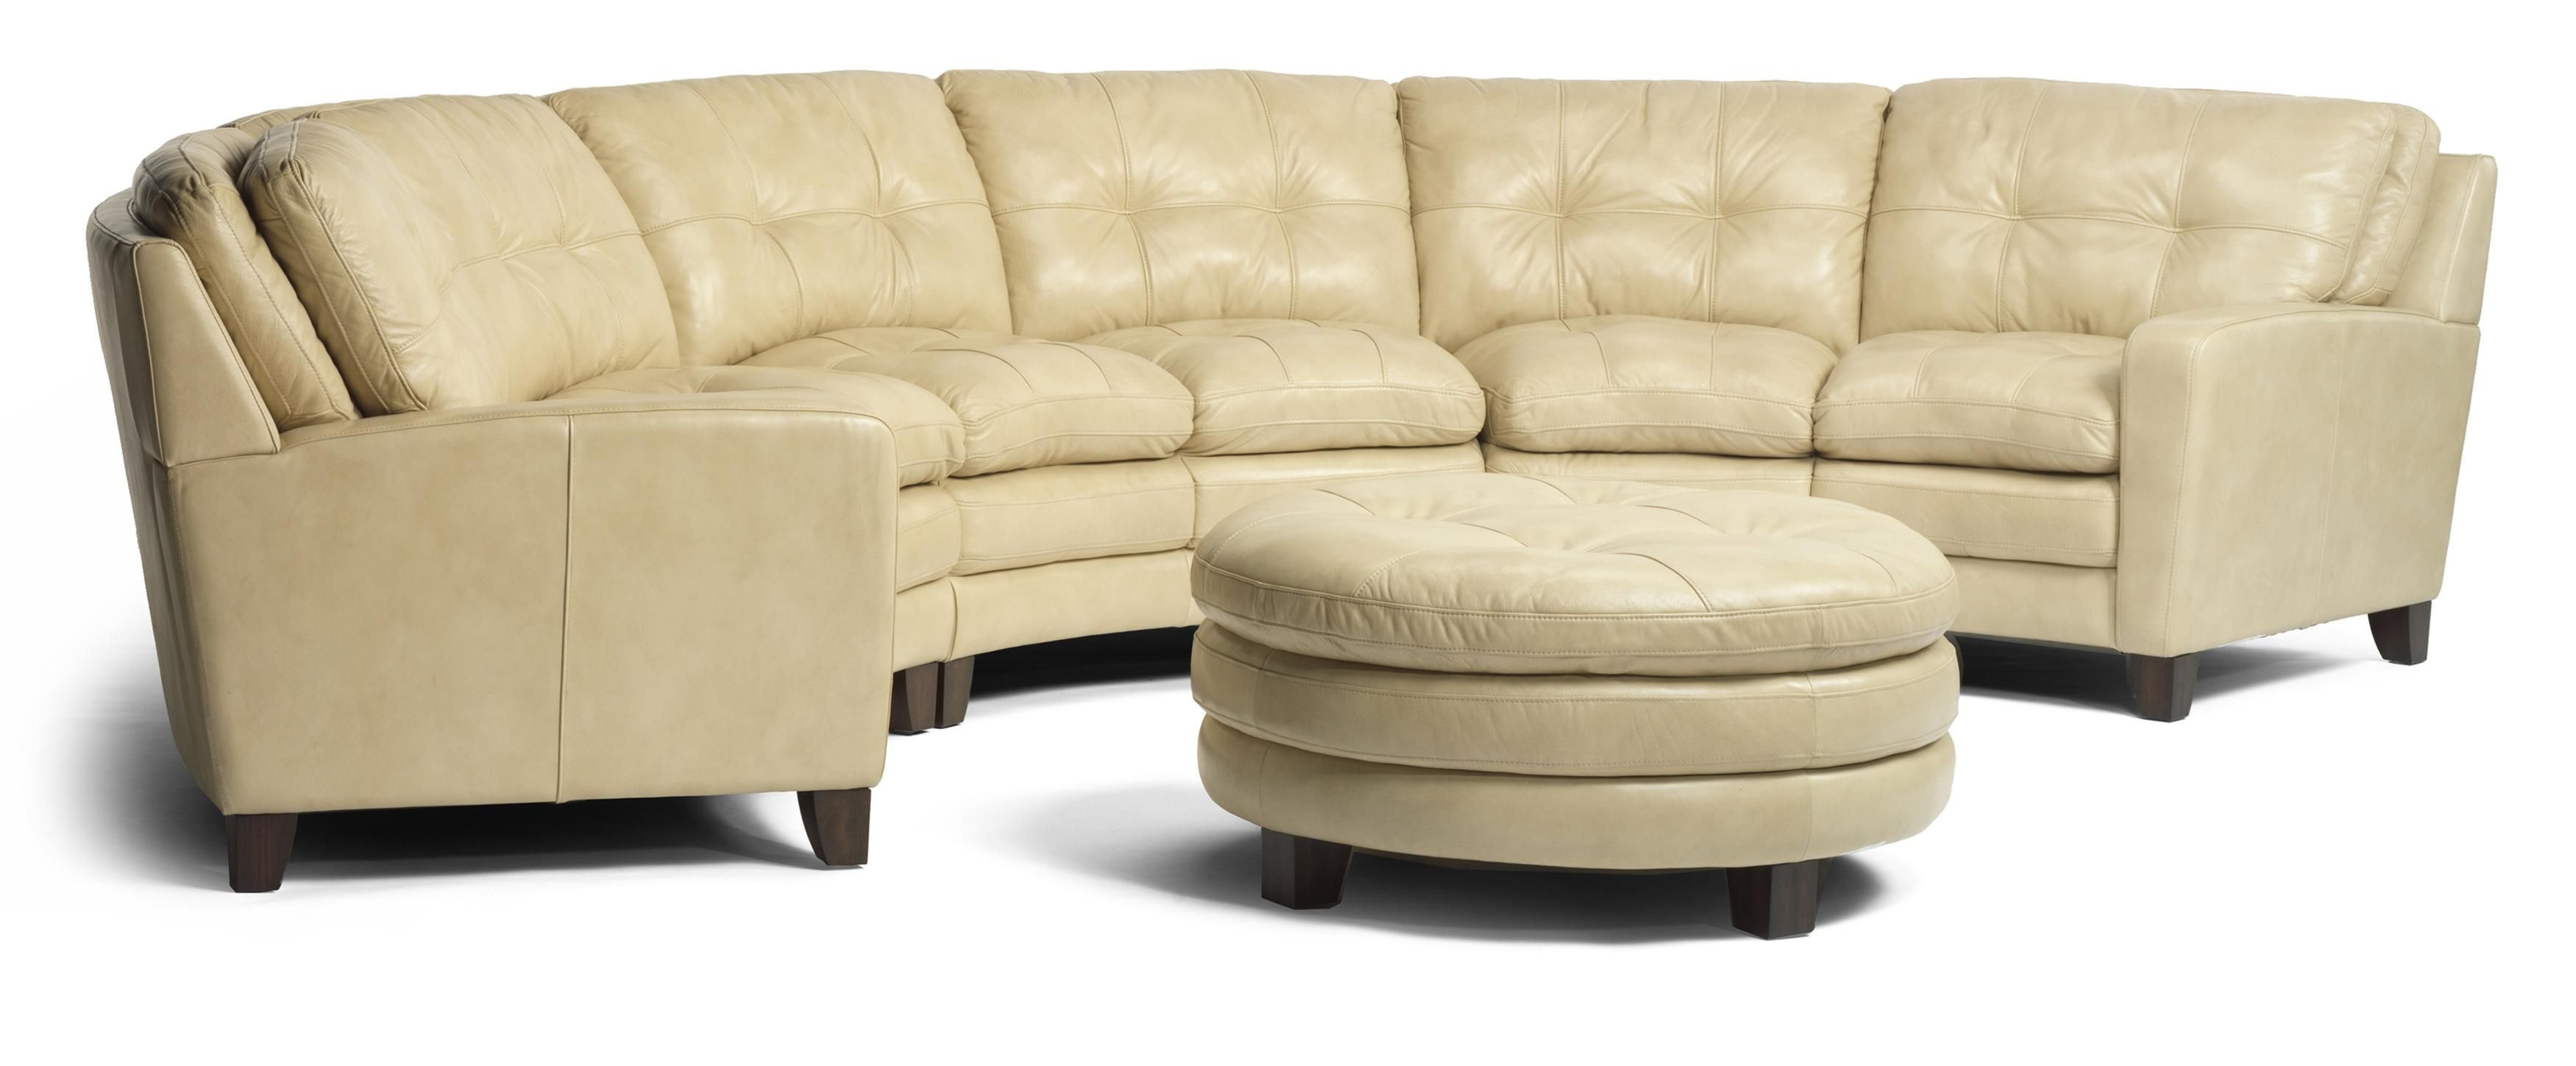 Curved Leather Sofa Curved Leather Sofa For Family Room